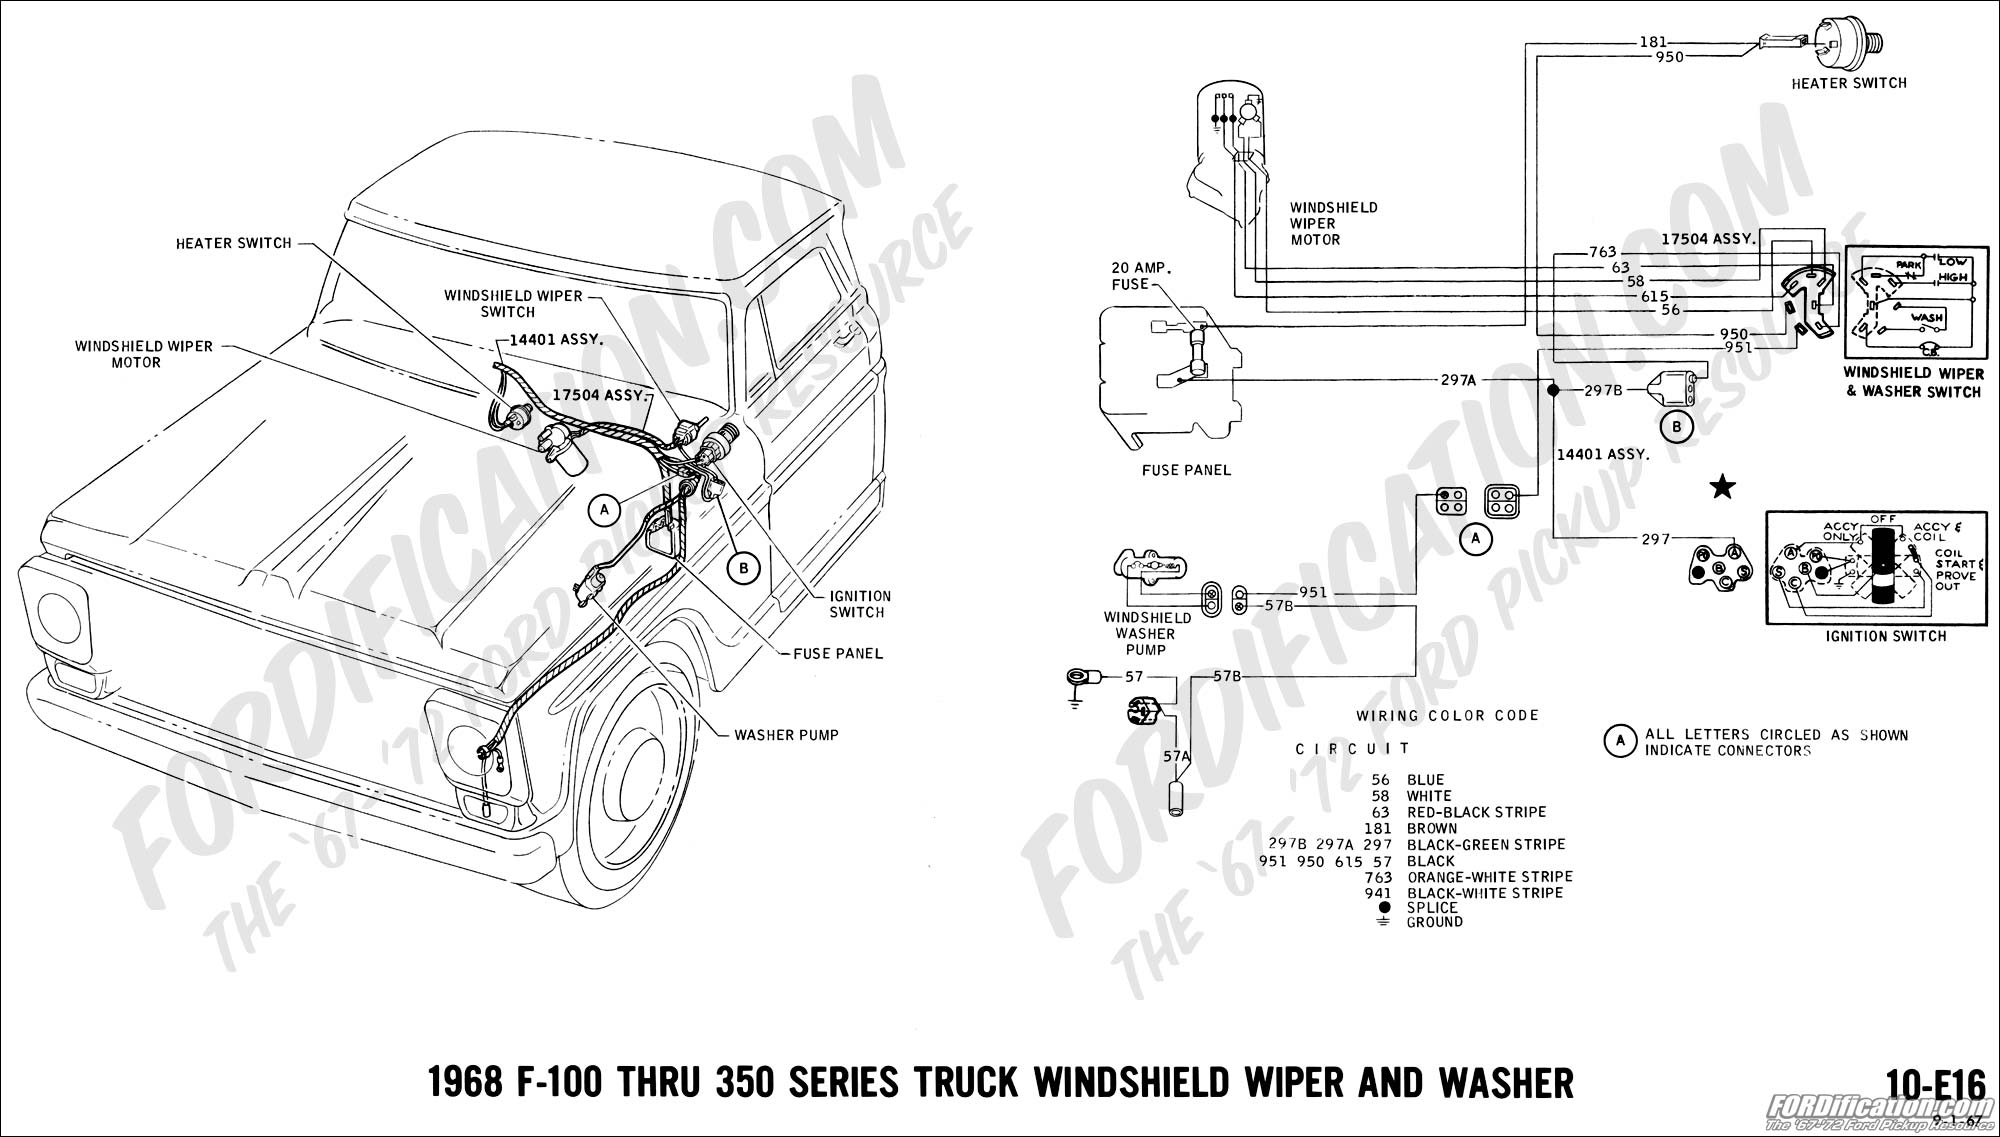 Instrument Panel Wiring Diagrams Of 1964 Ford F 100 F 750 Series Trucks moreover 2zi6j Fix Replace 1991 F150 Truck Horn also 34066 2004 Jeep Wrangler Will Not Start Please Help moreover 5gkik Ford F250 Pickup Super Cab 4x4 Wiring Diagram also Need Dual Tank Diagram 250166. on ford f 350 wiring diagram